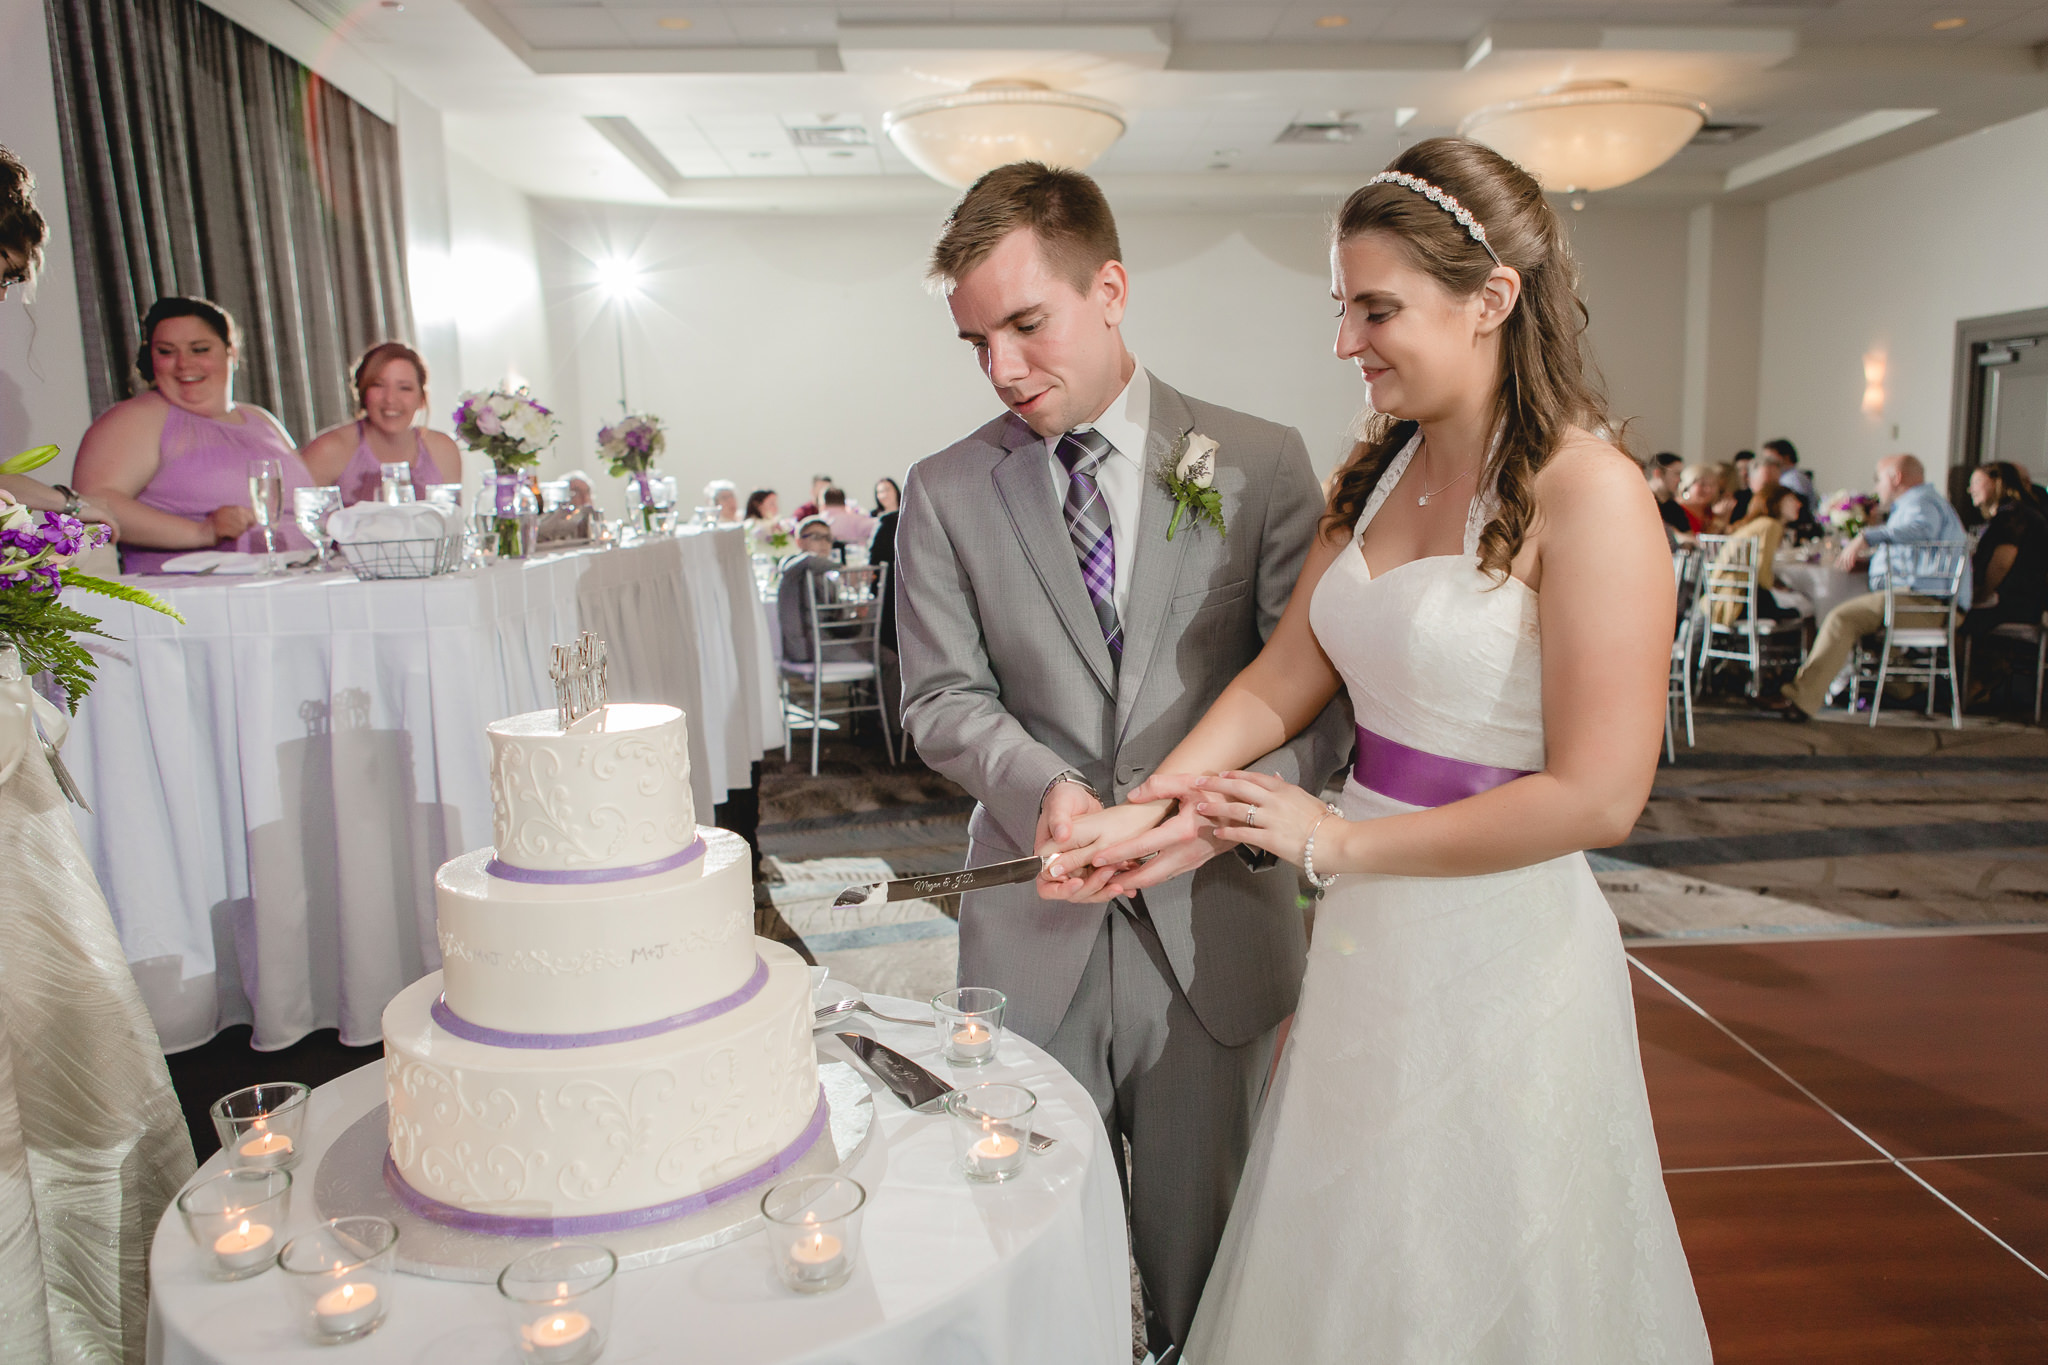 Cake cutting at a Pittsburgh Airport Marriott wedding reception